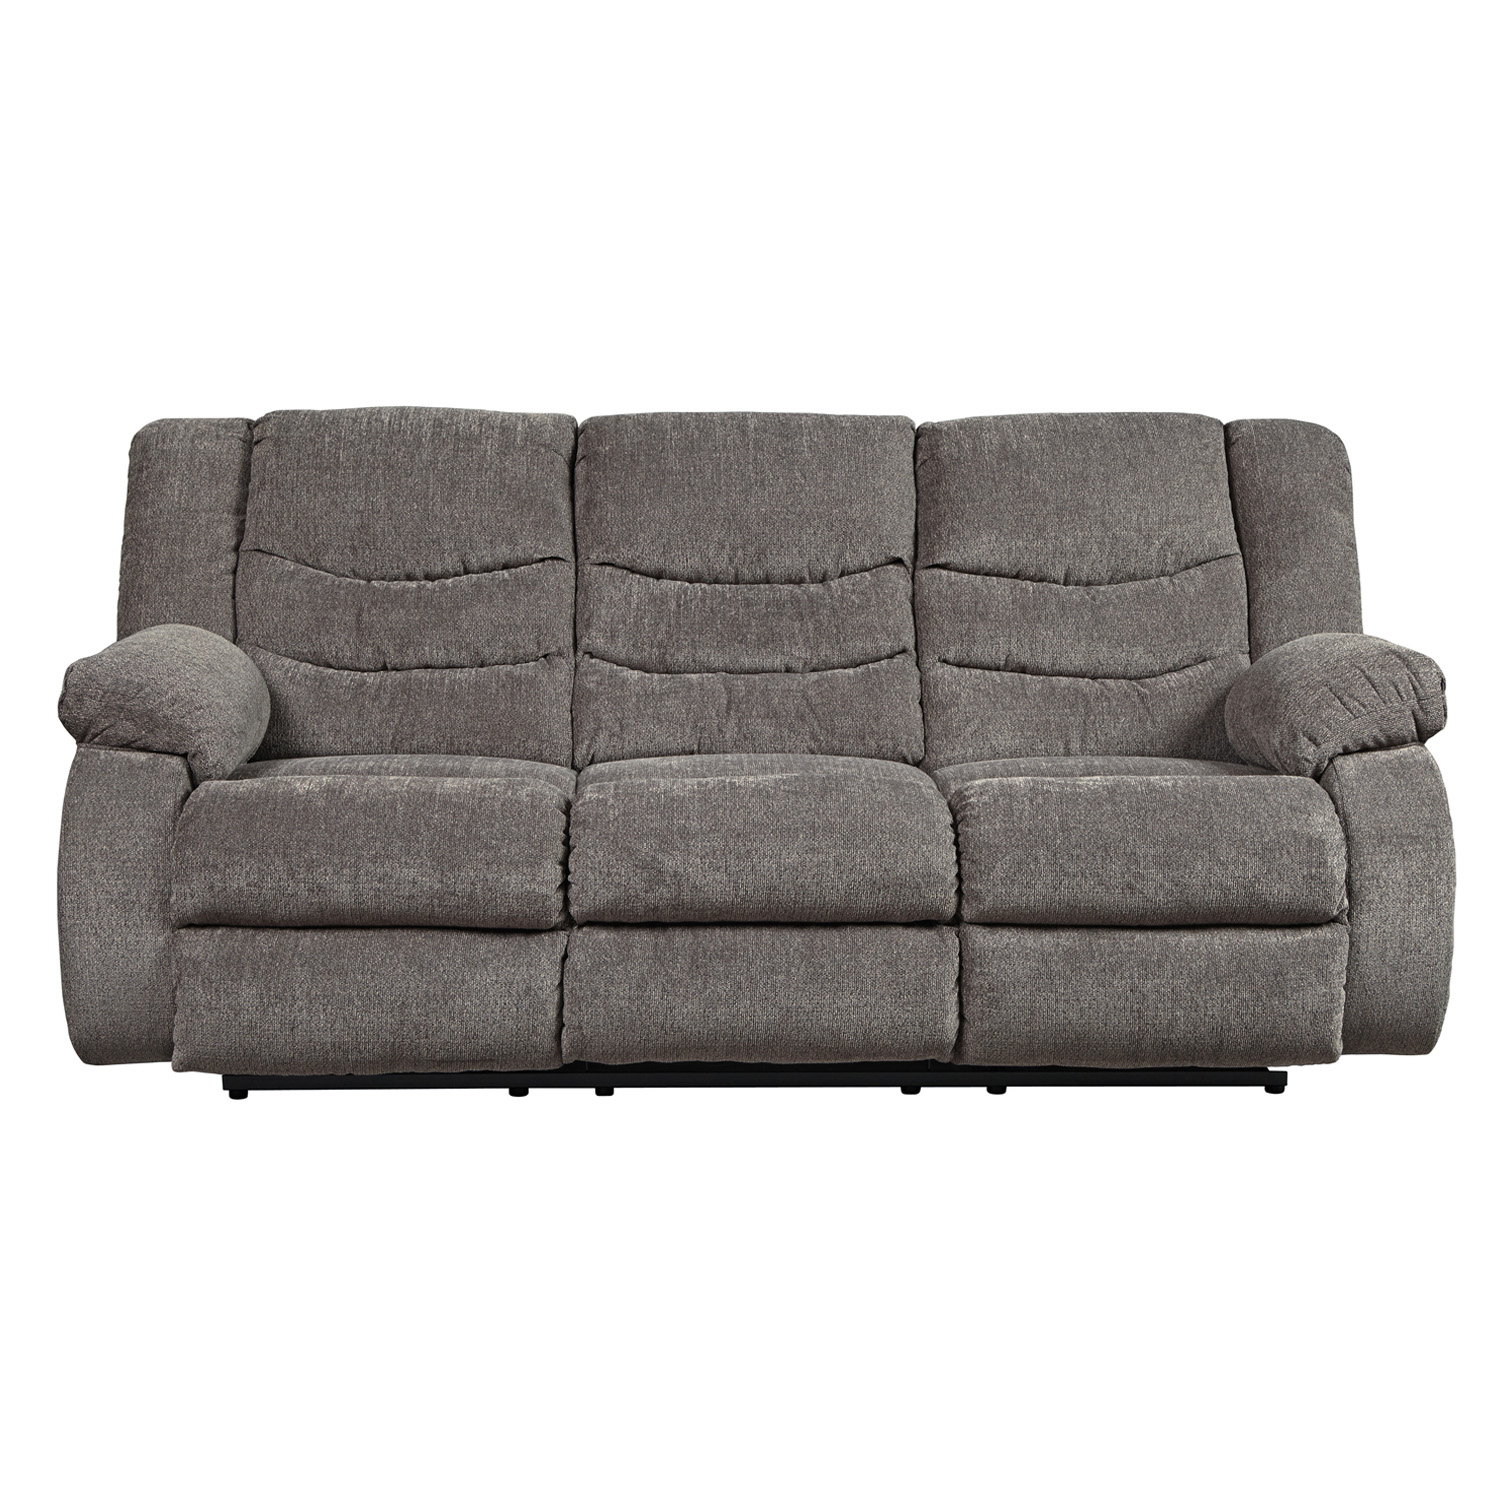 reclining sofa on clearance living grey room decor sofas and loveseats couches for